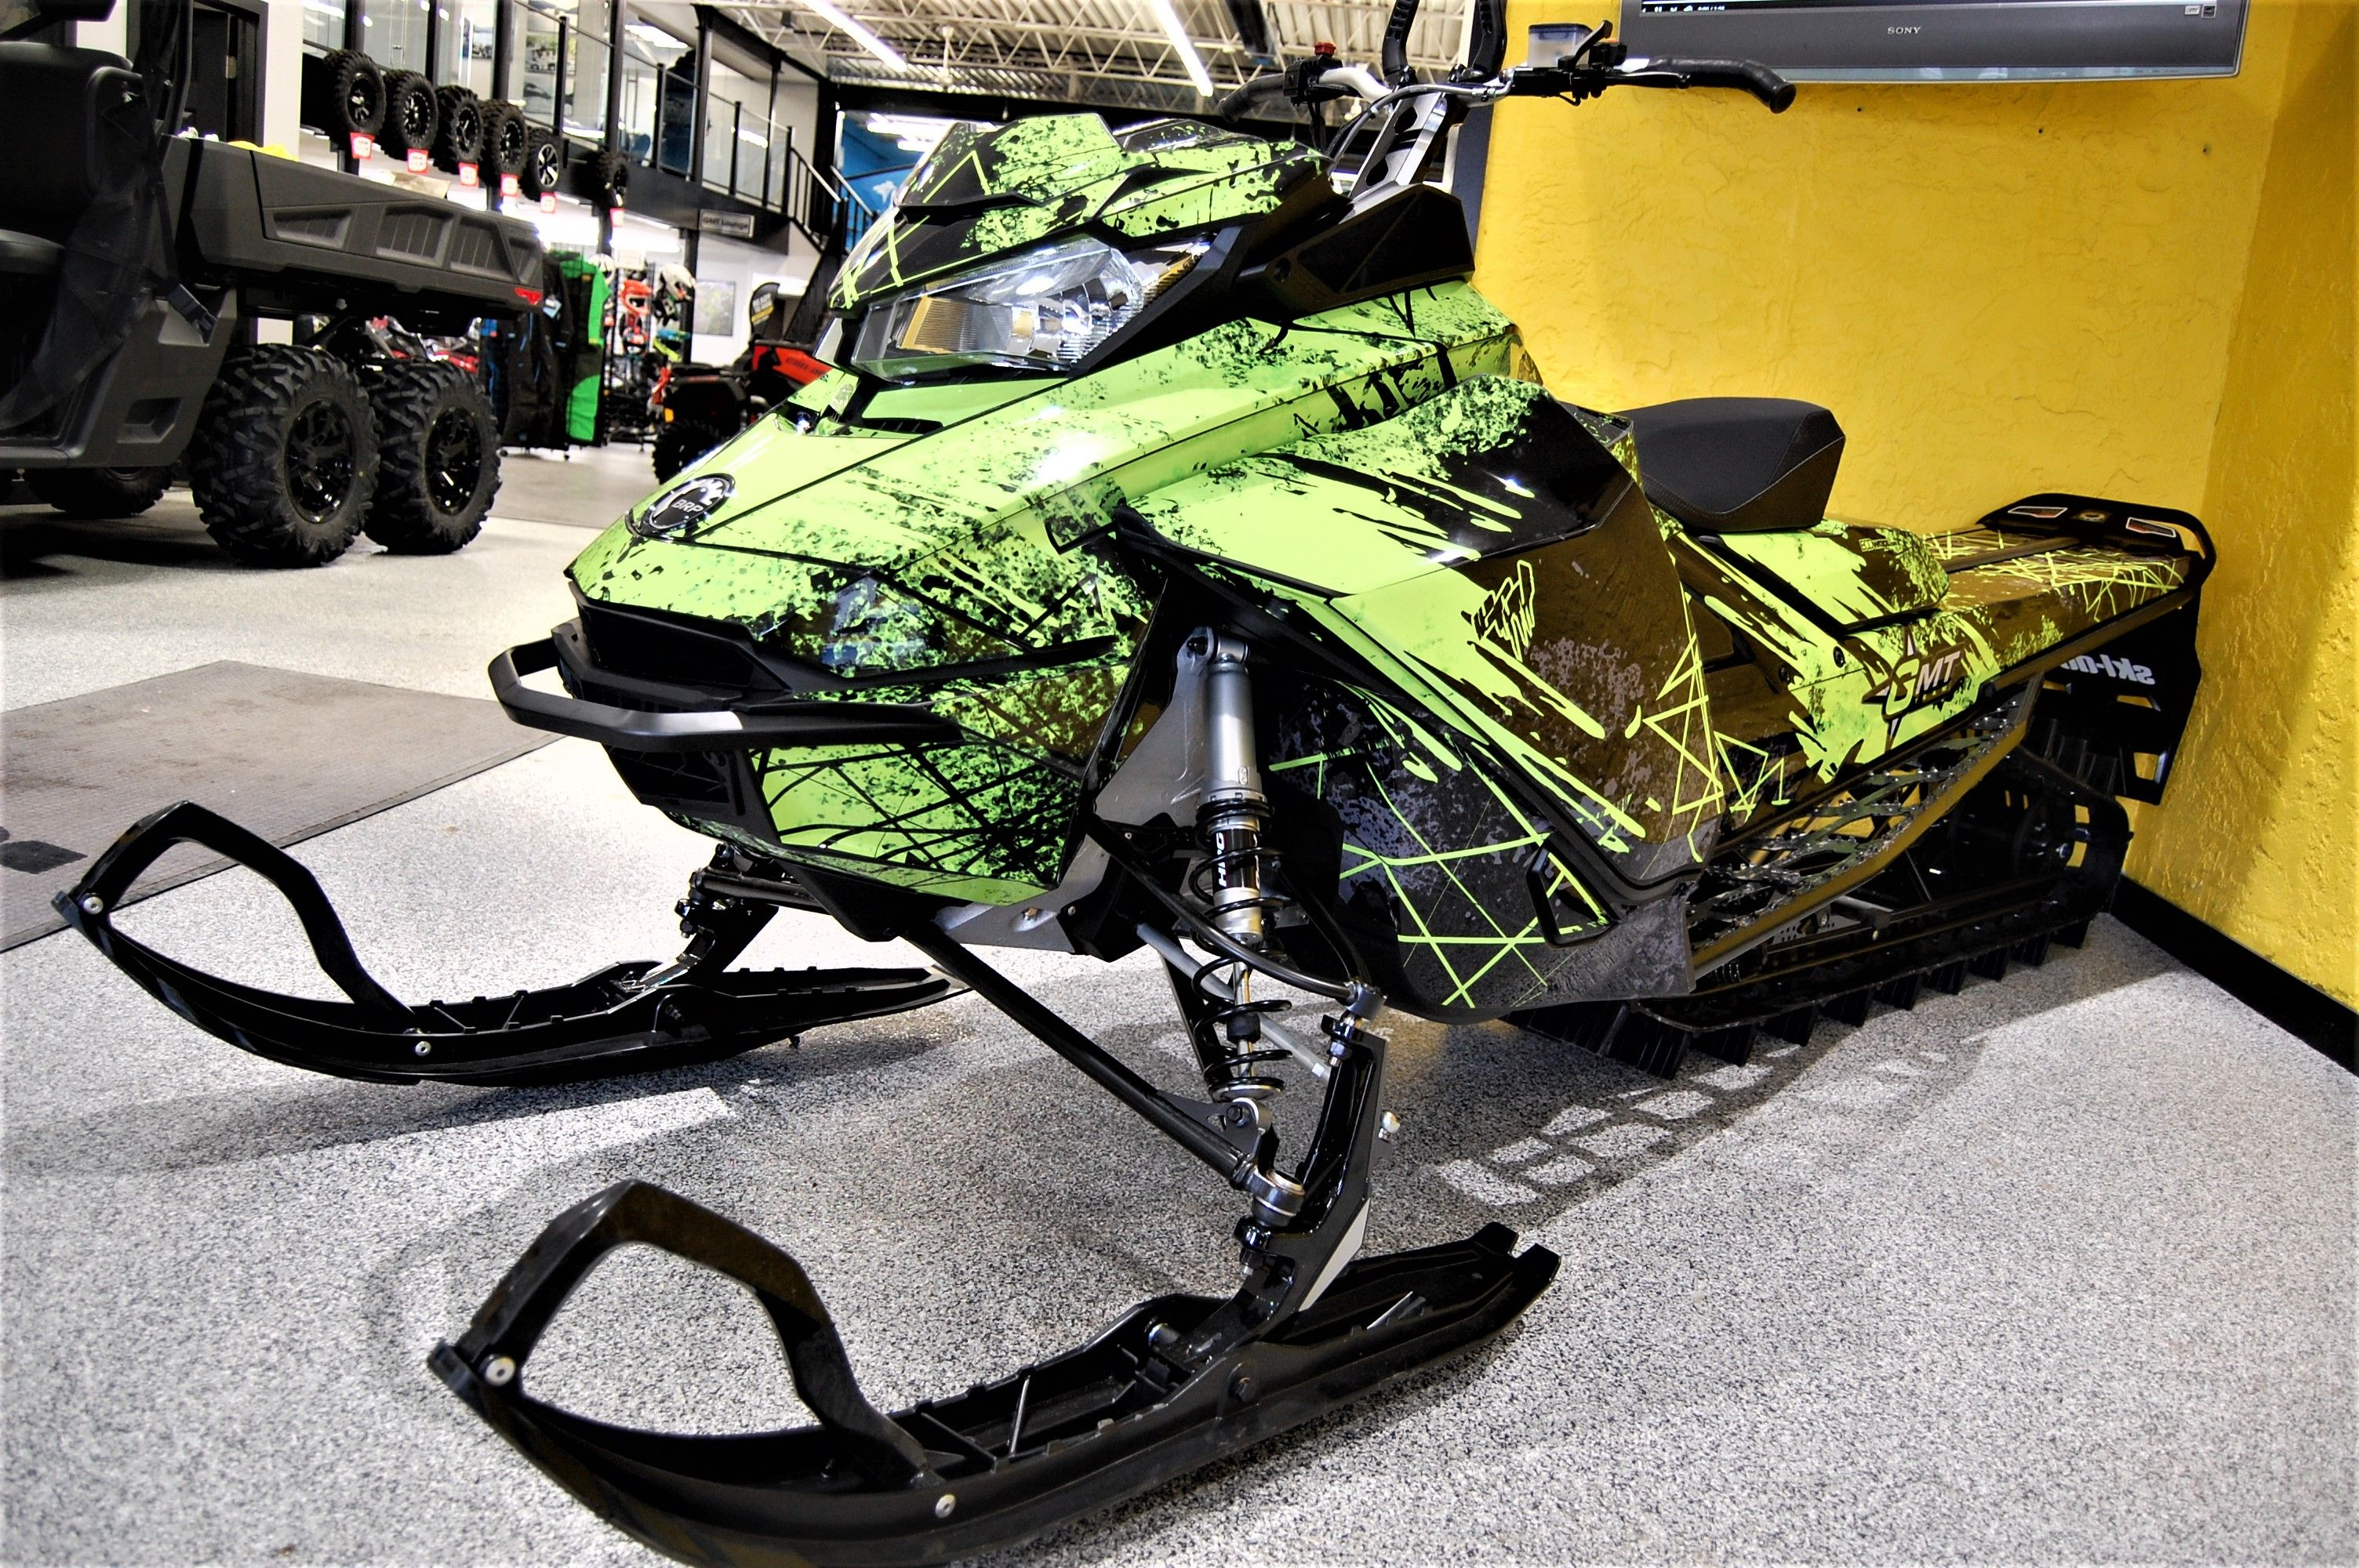 New Arrival If You Have Been Waiting To Find A Ski Doo That Fits Your Adventure Mode We Would Like To Inform You Of Something In 2020 Skiing Snowmobile Green Wrap